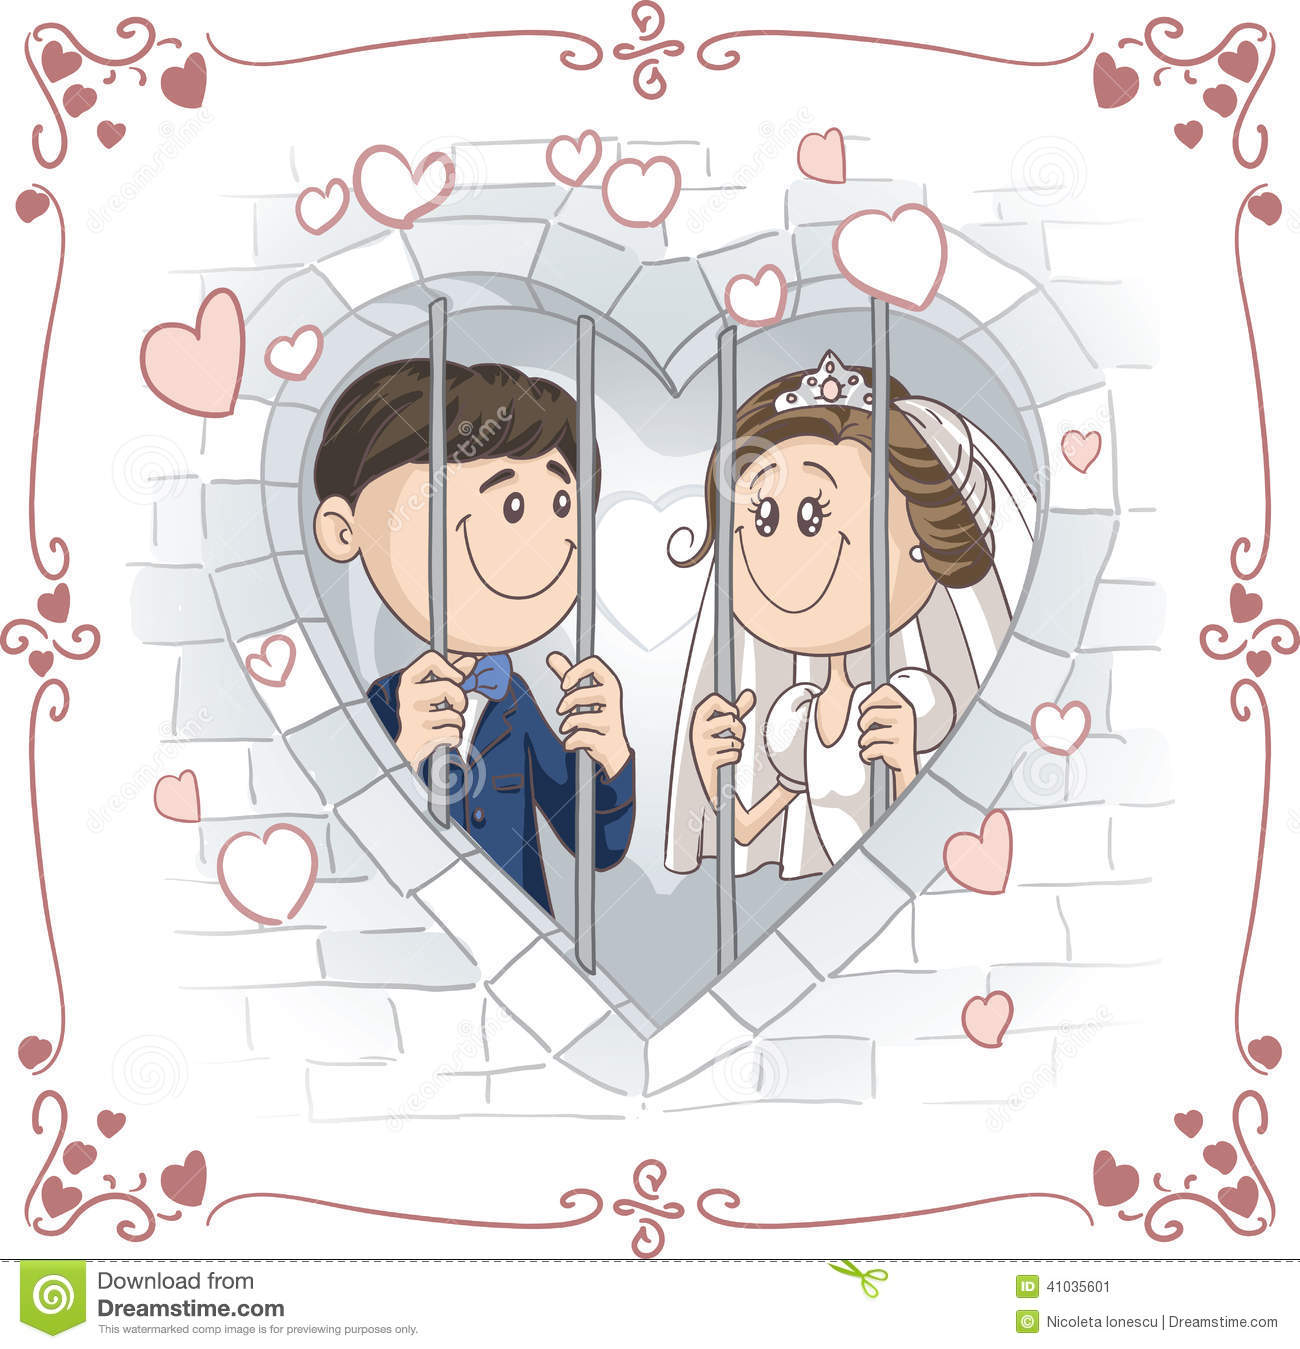 ... sharing a prison cell, lovingly. File type: vector EPS AI8 compatible